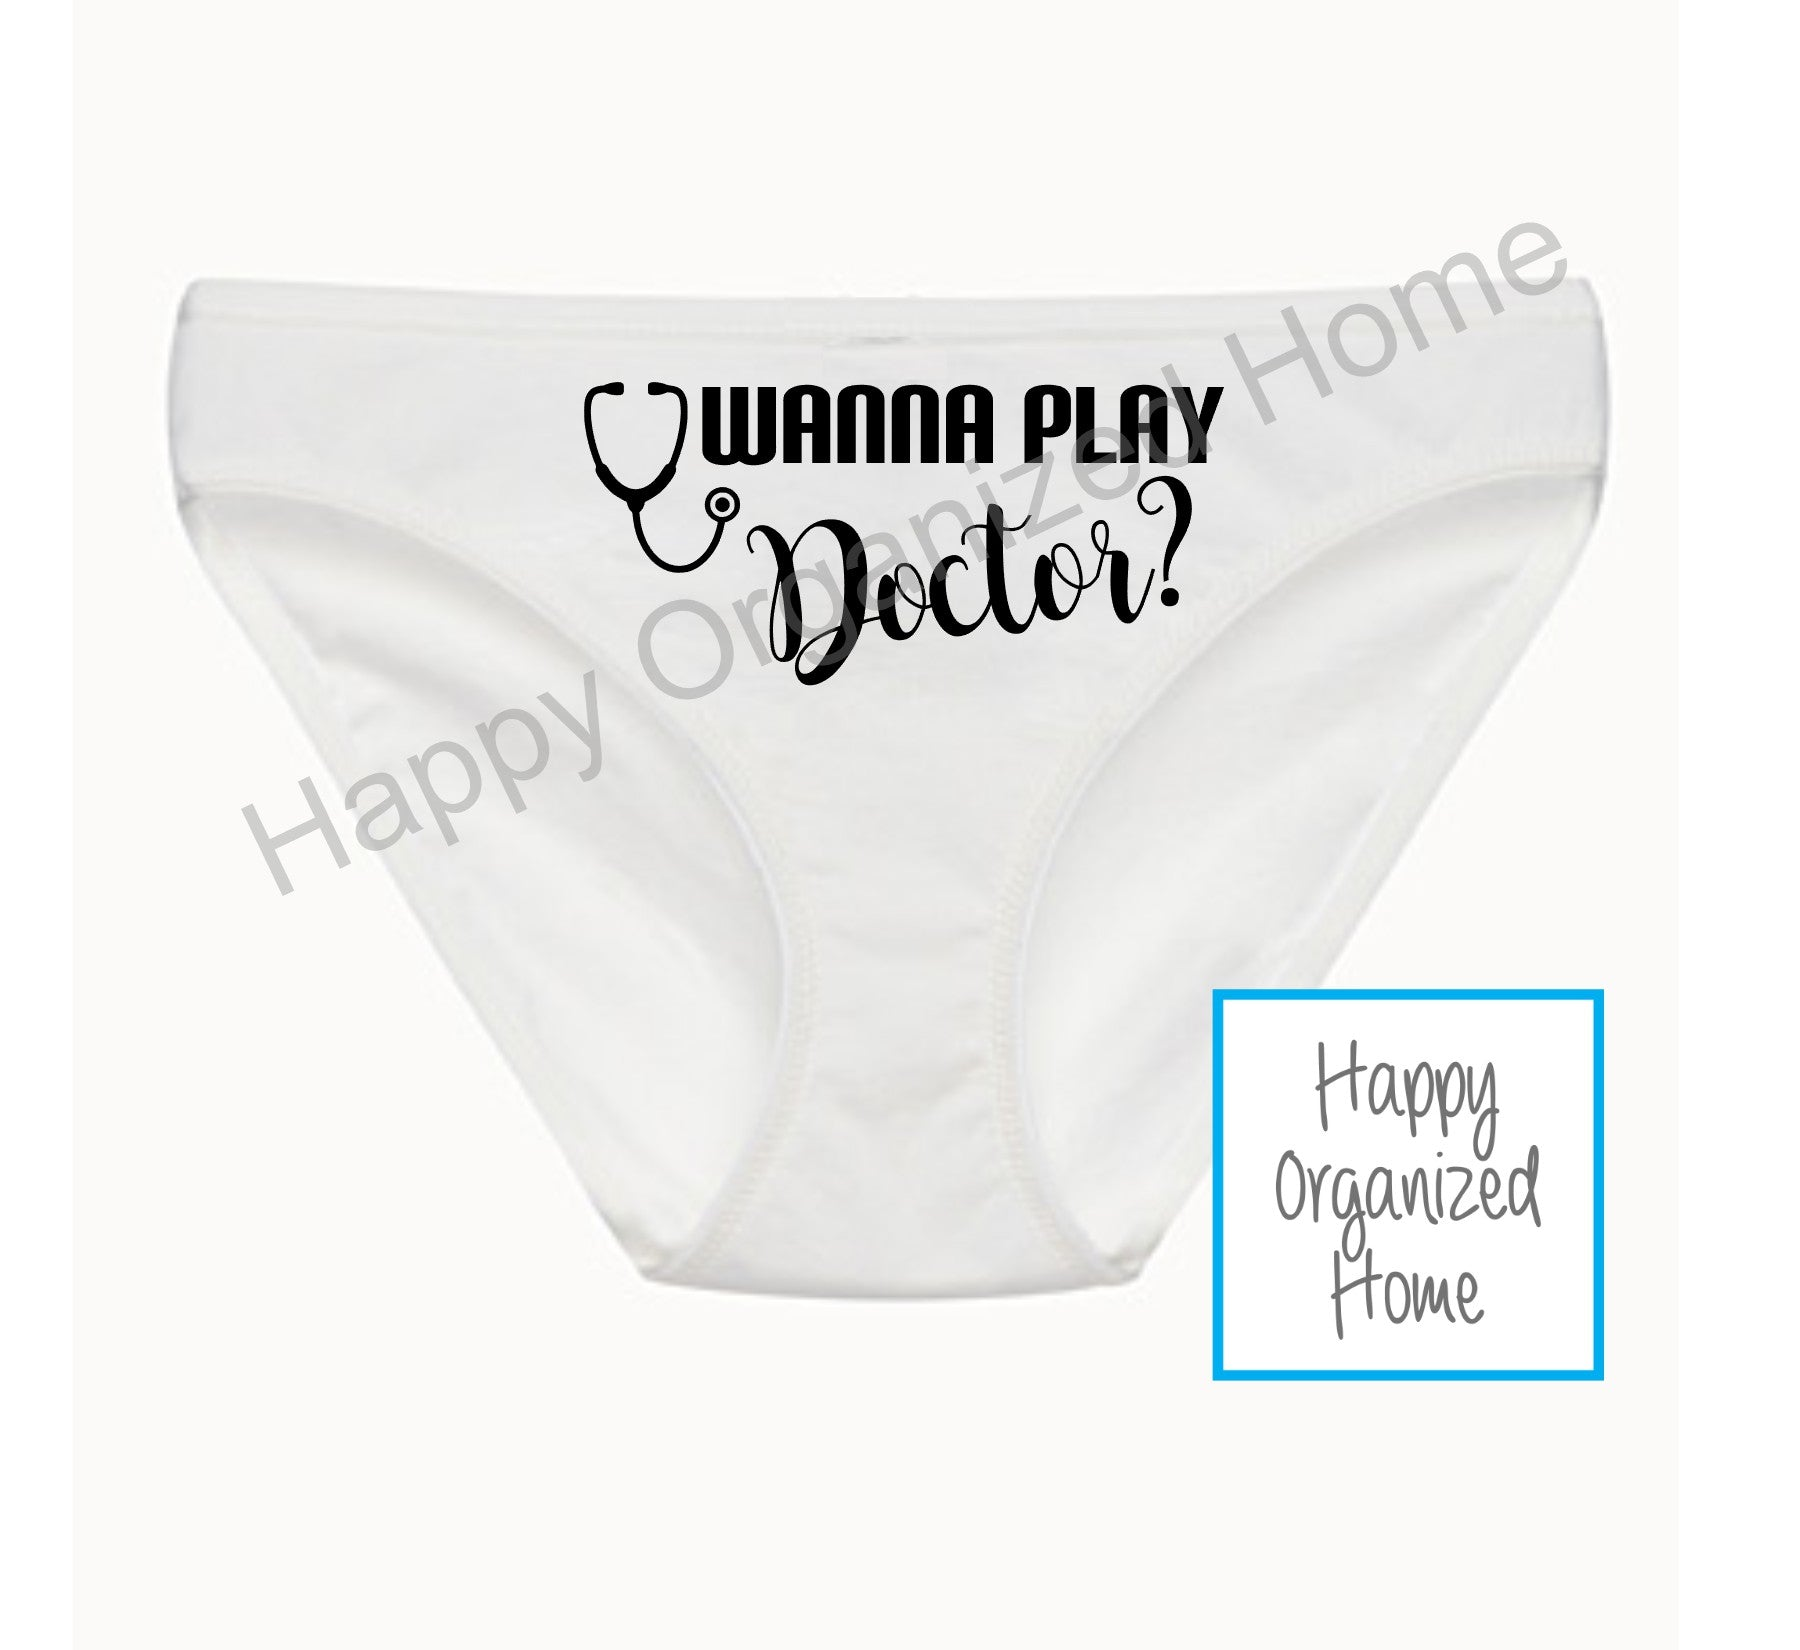 Wanna Play Doctor? - Ladies Bikini Panties